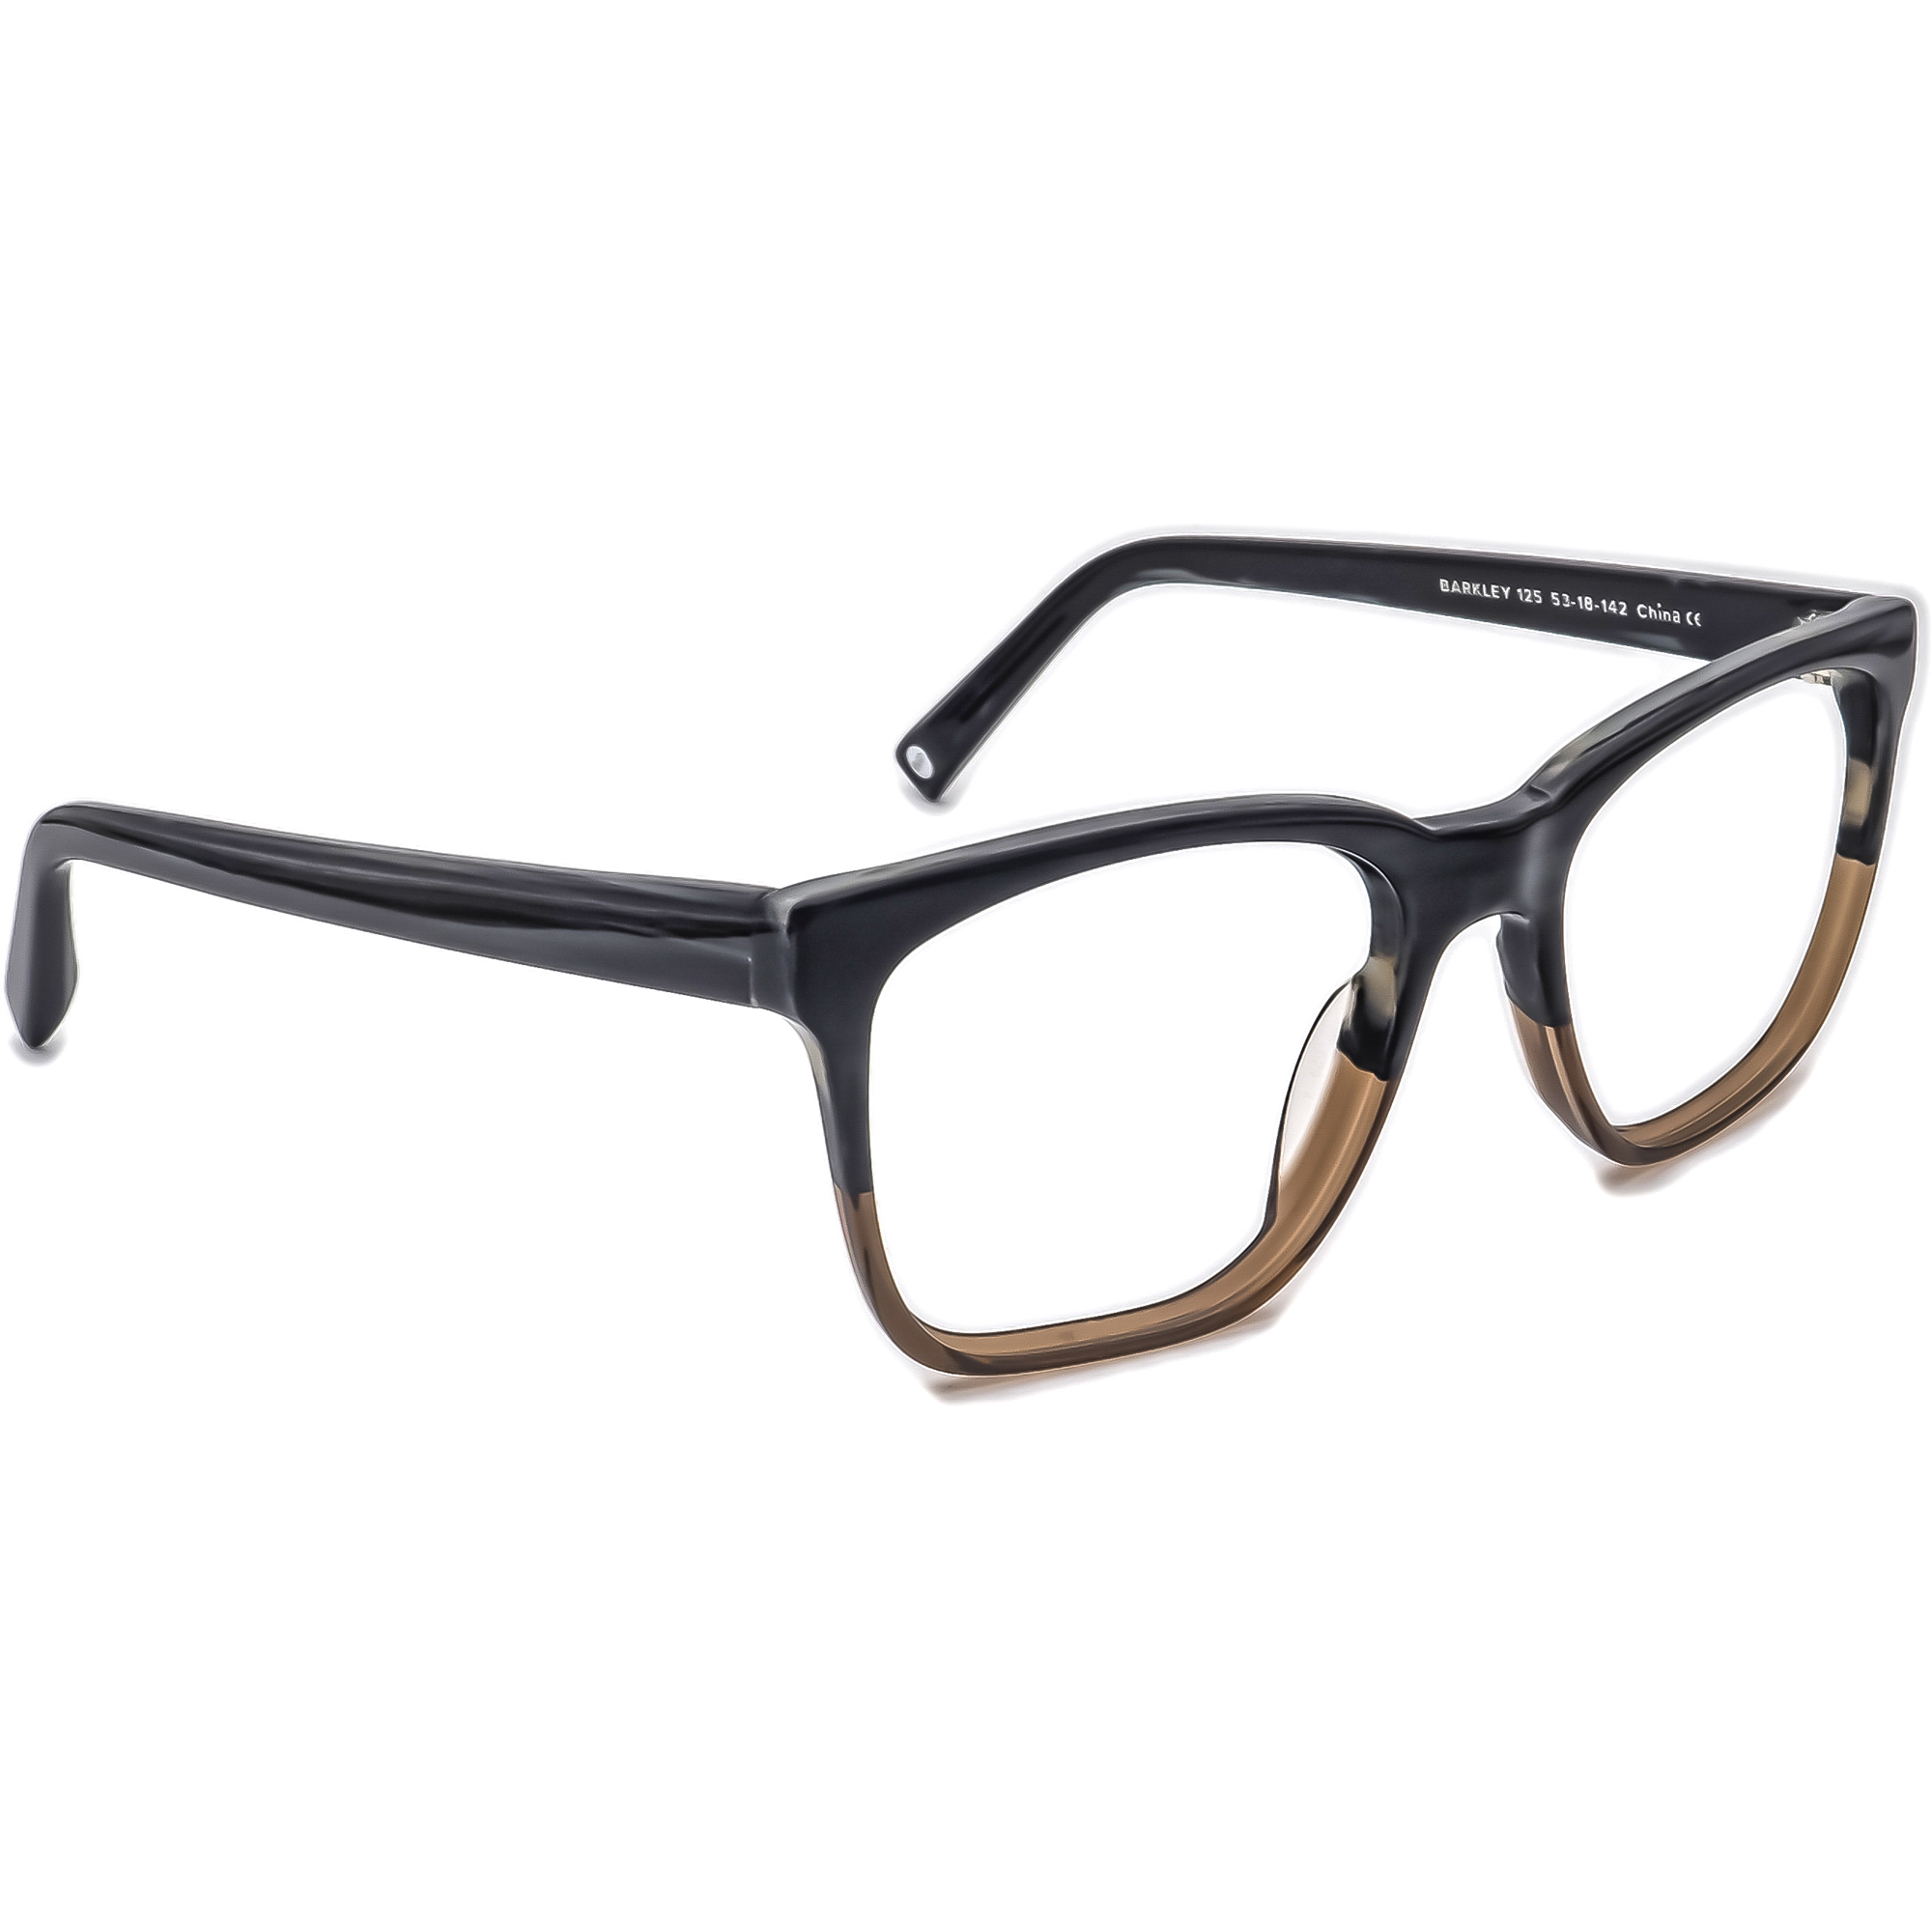 Warby Parker Eyeglasses Barkley 125 Striped Gray/Brown Square Frame 53[]18 142